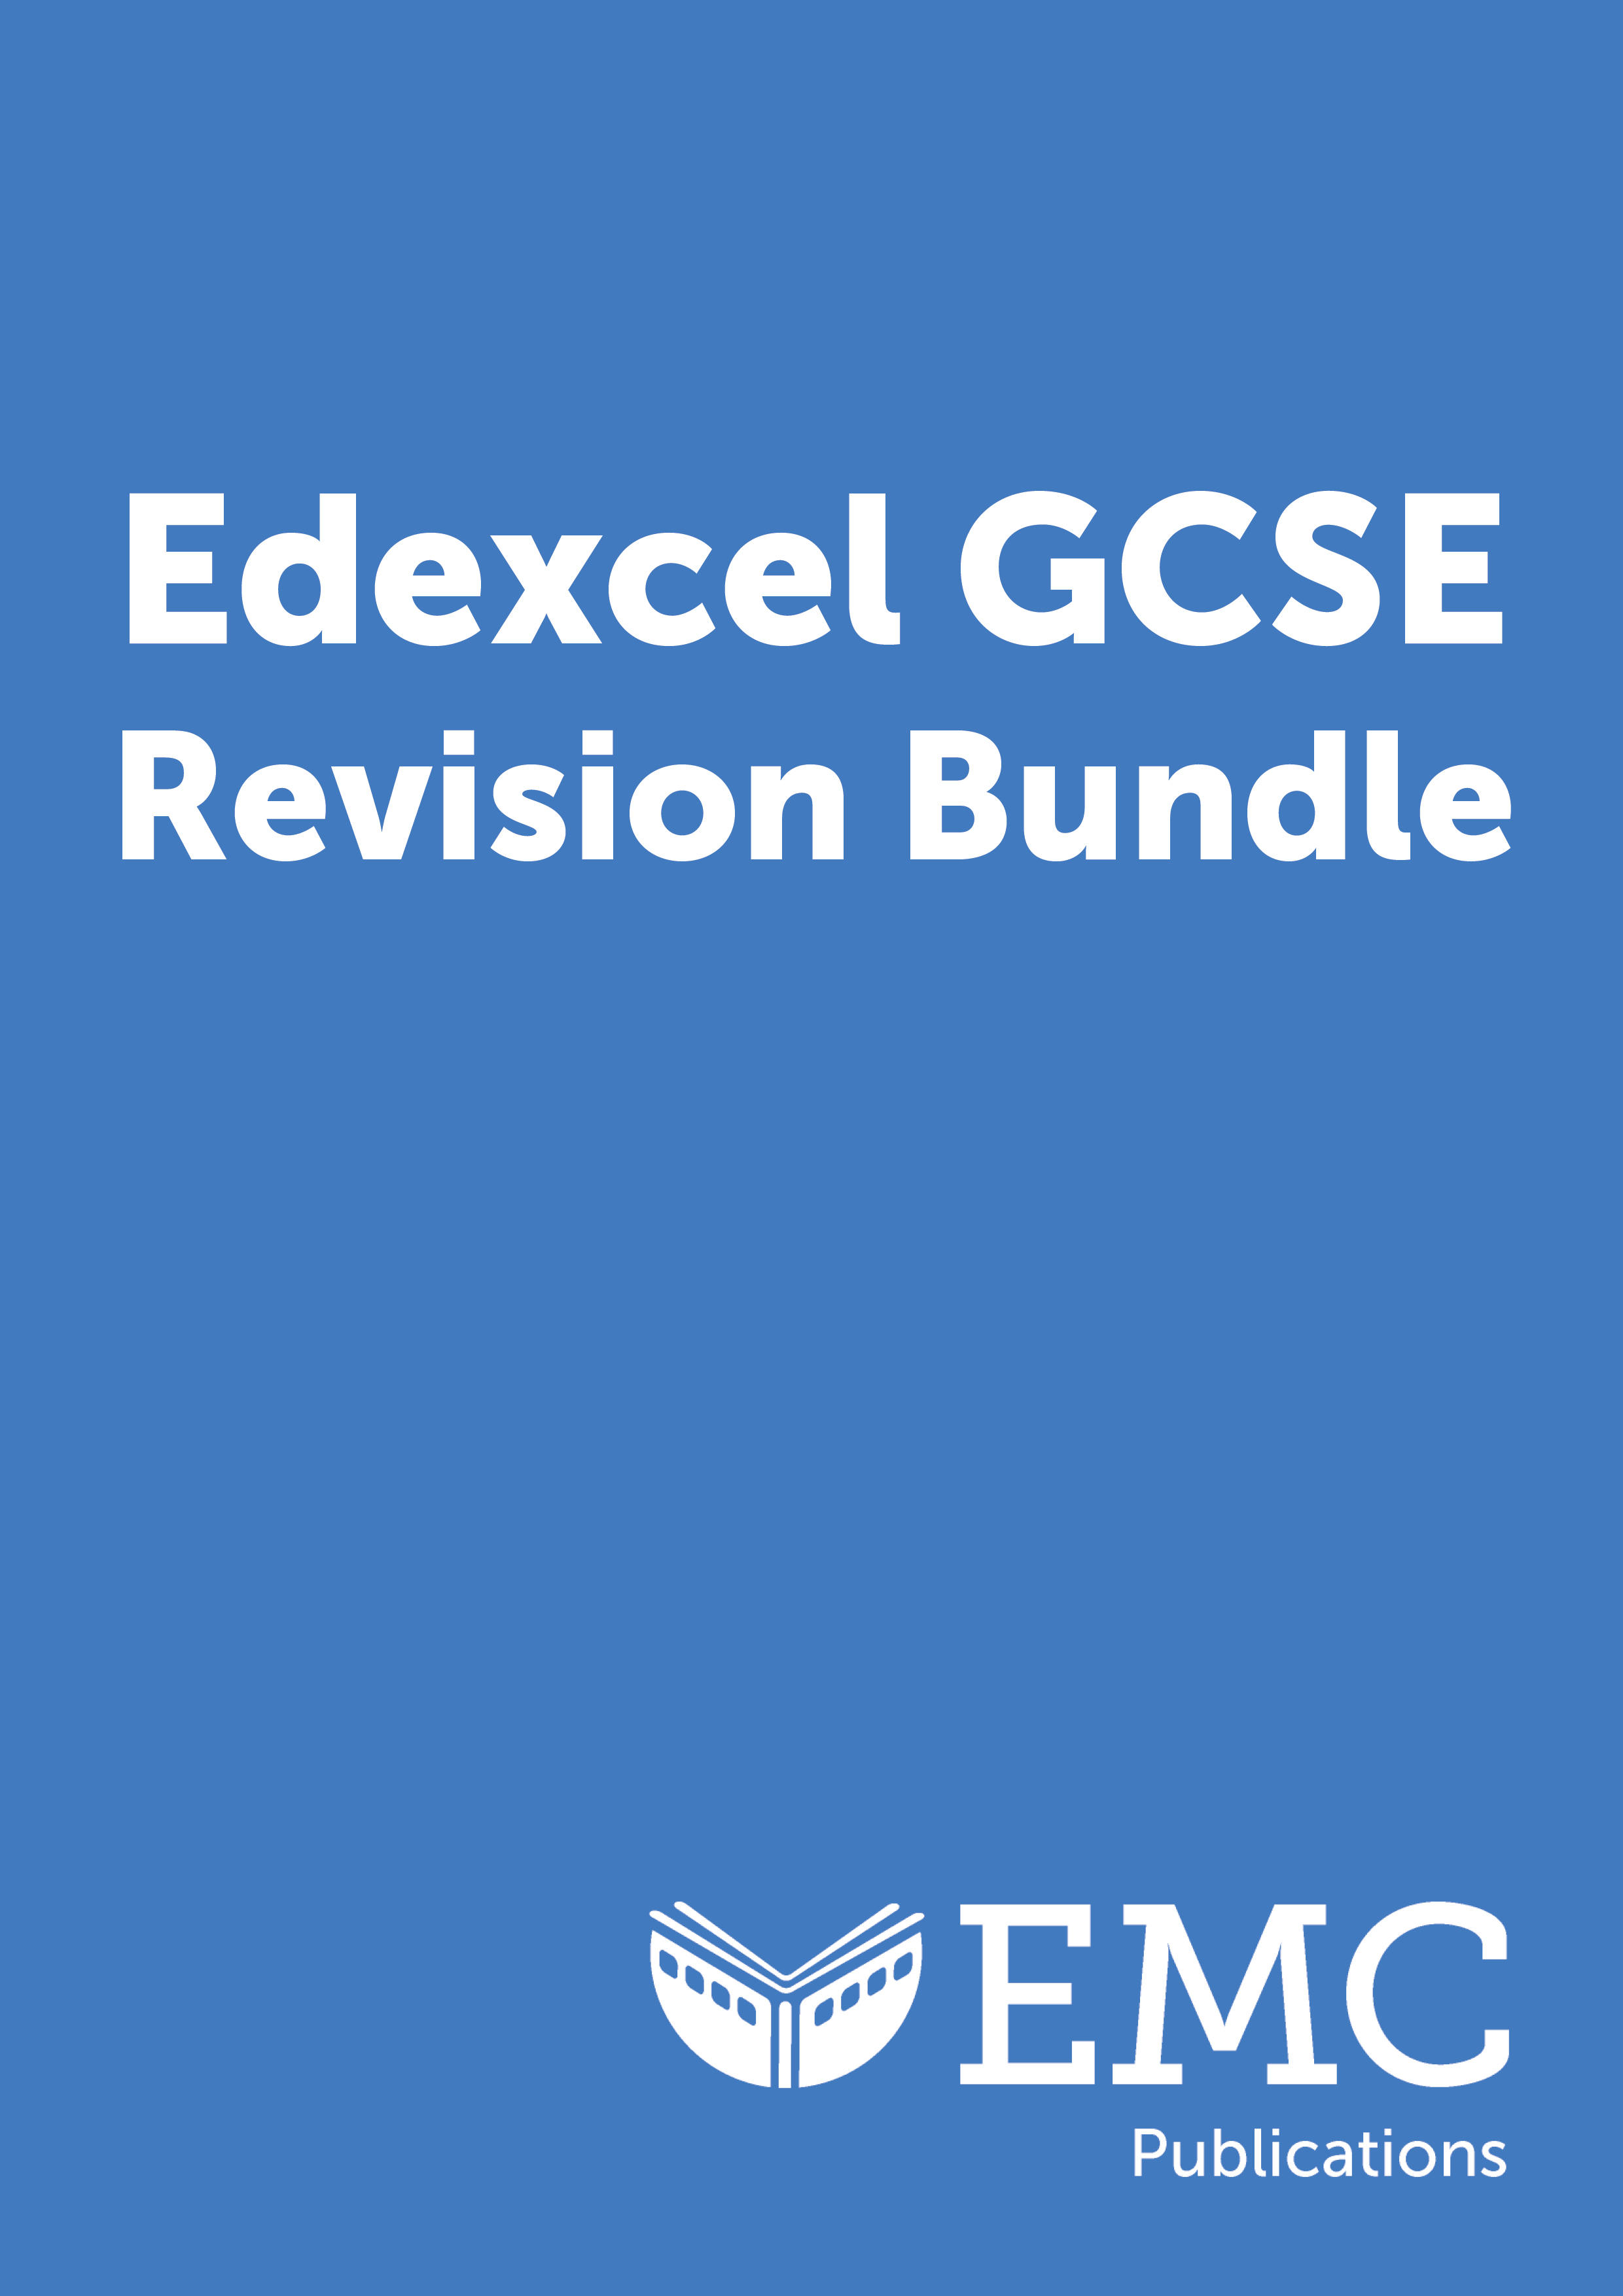 Cover image for The Edexcel Revision Bundle (Download)